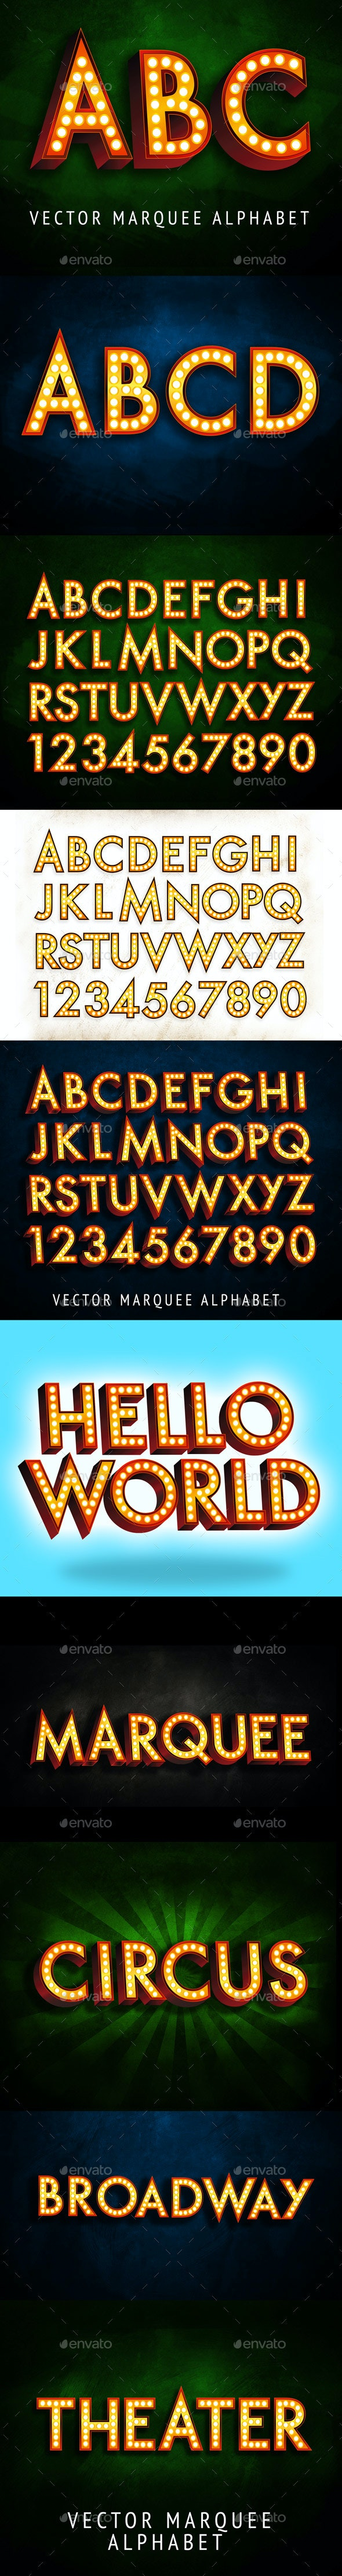 Marquee Vector Alphabet Letters - Characters Illustrations